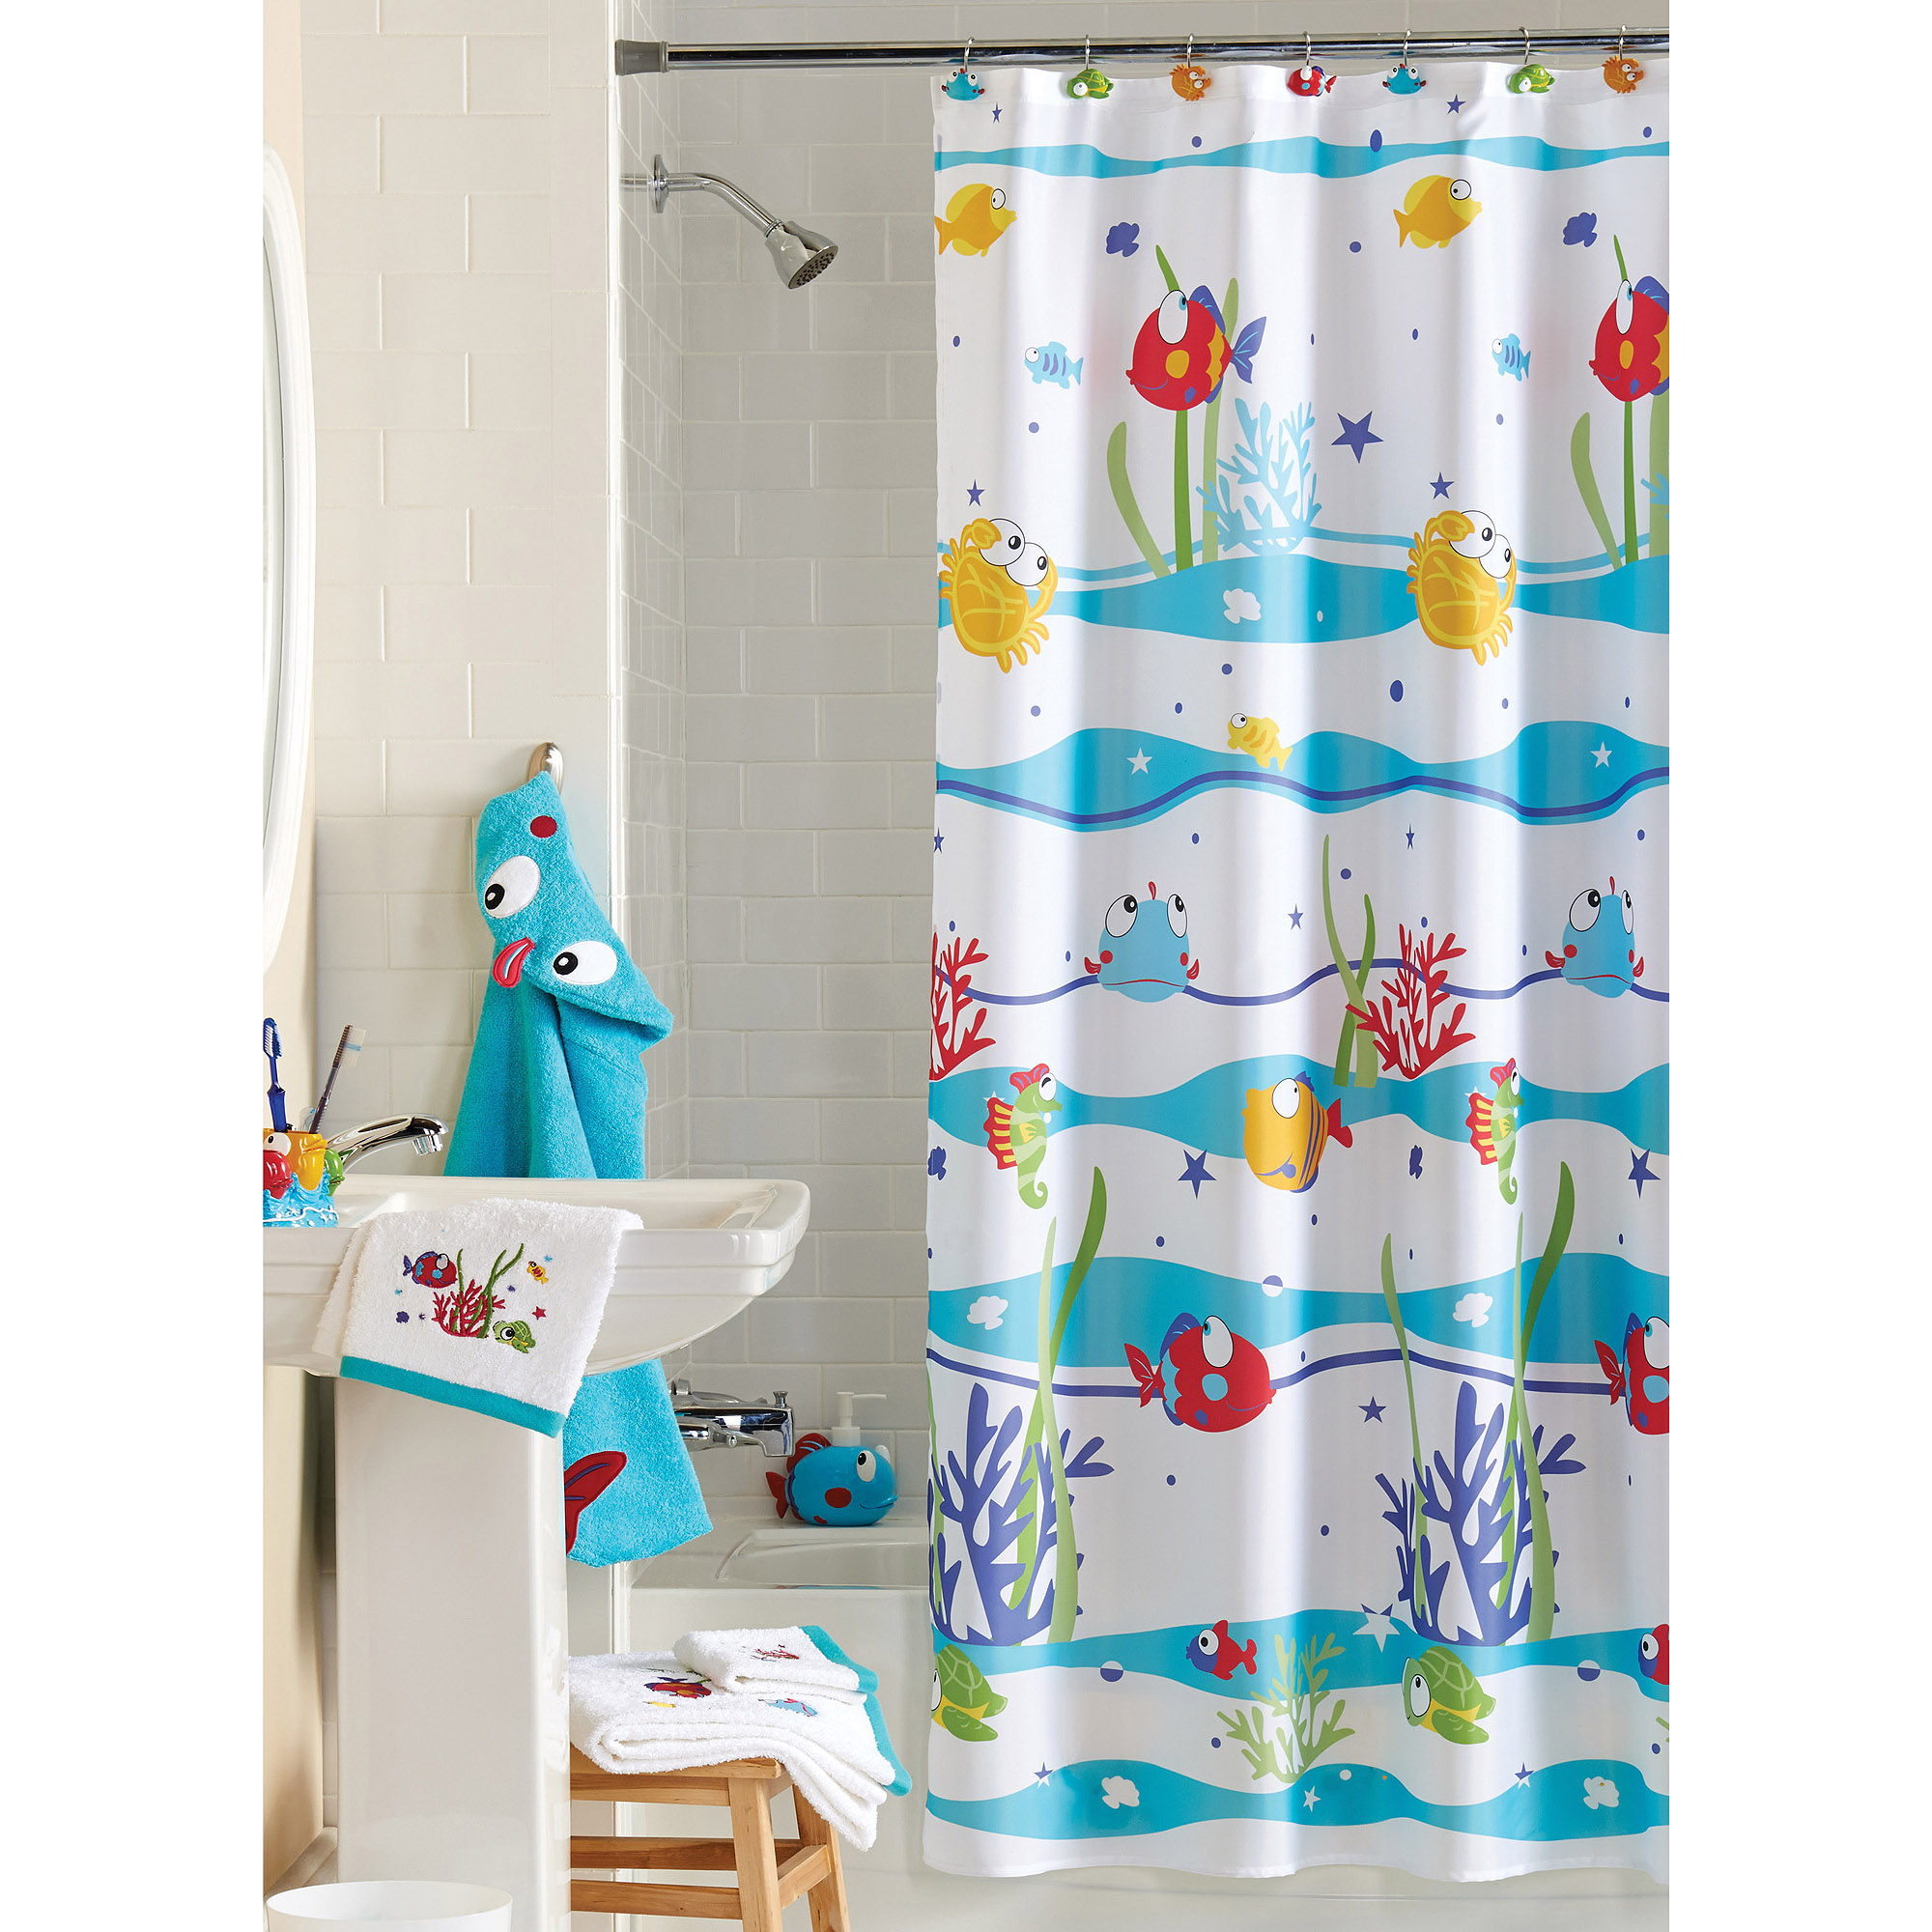 mainstays something's fishy shower curtain - walmart